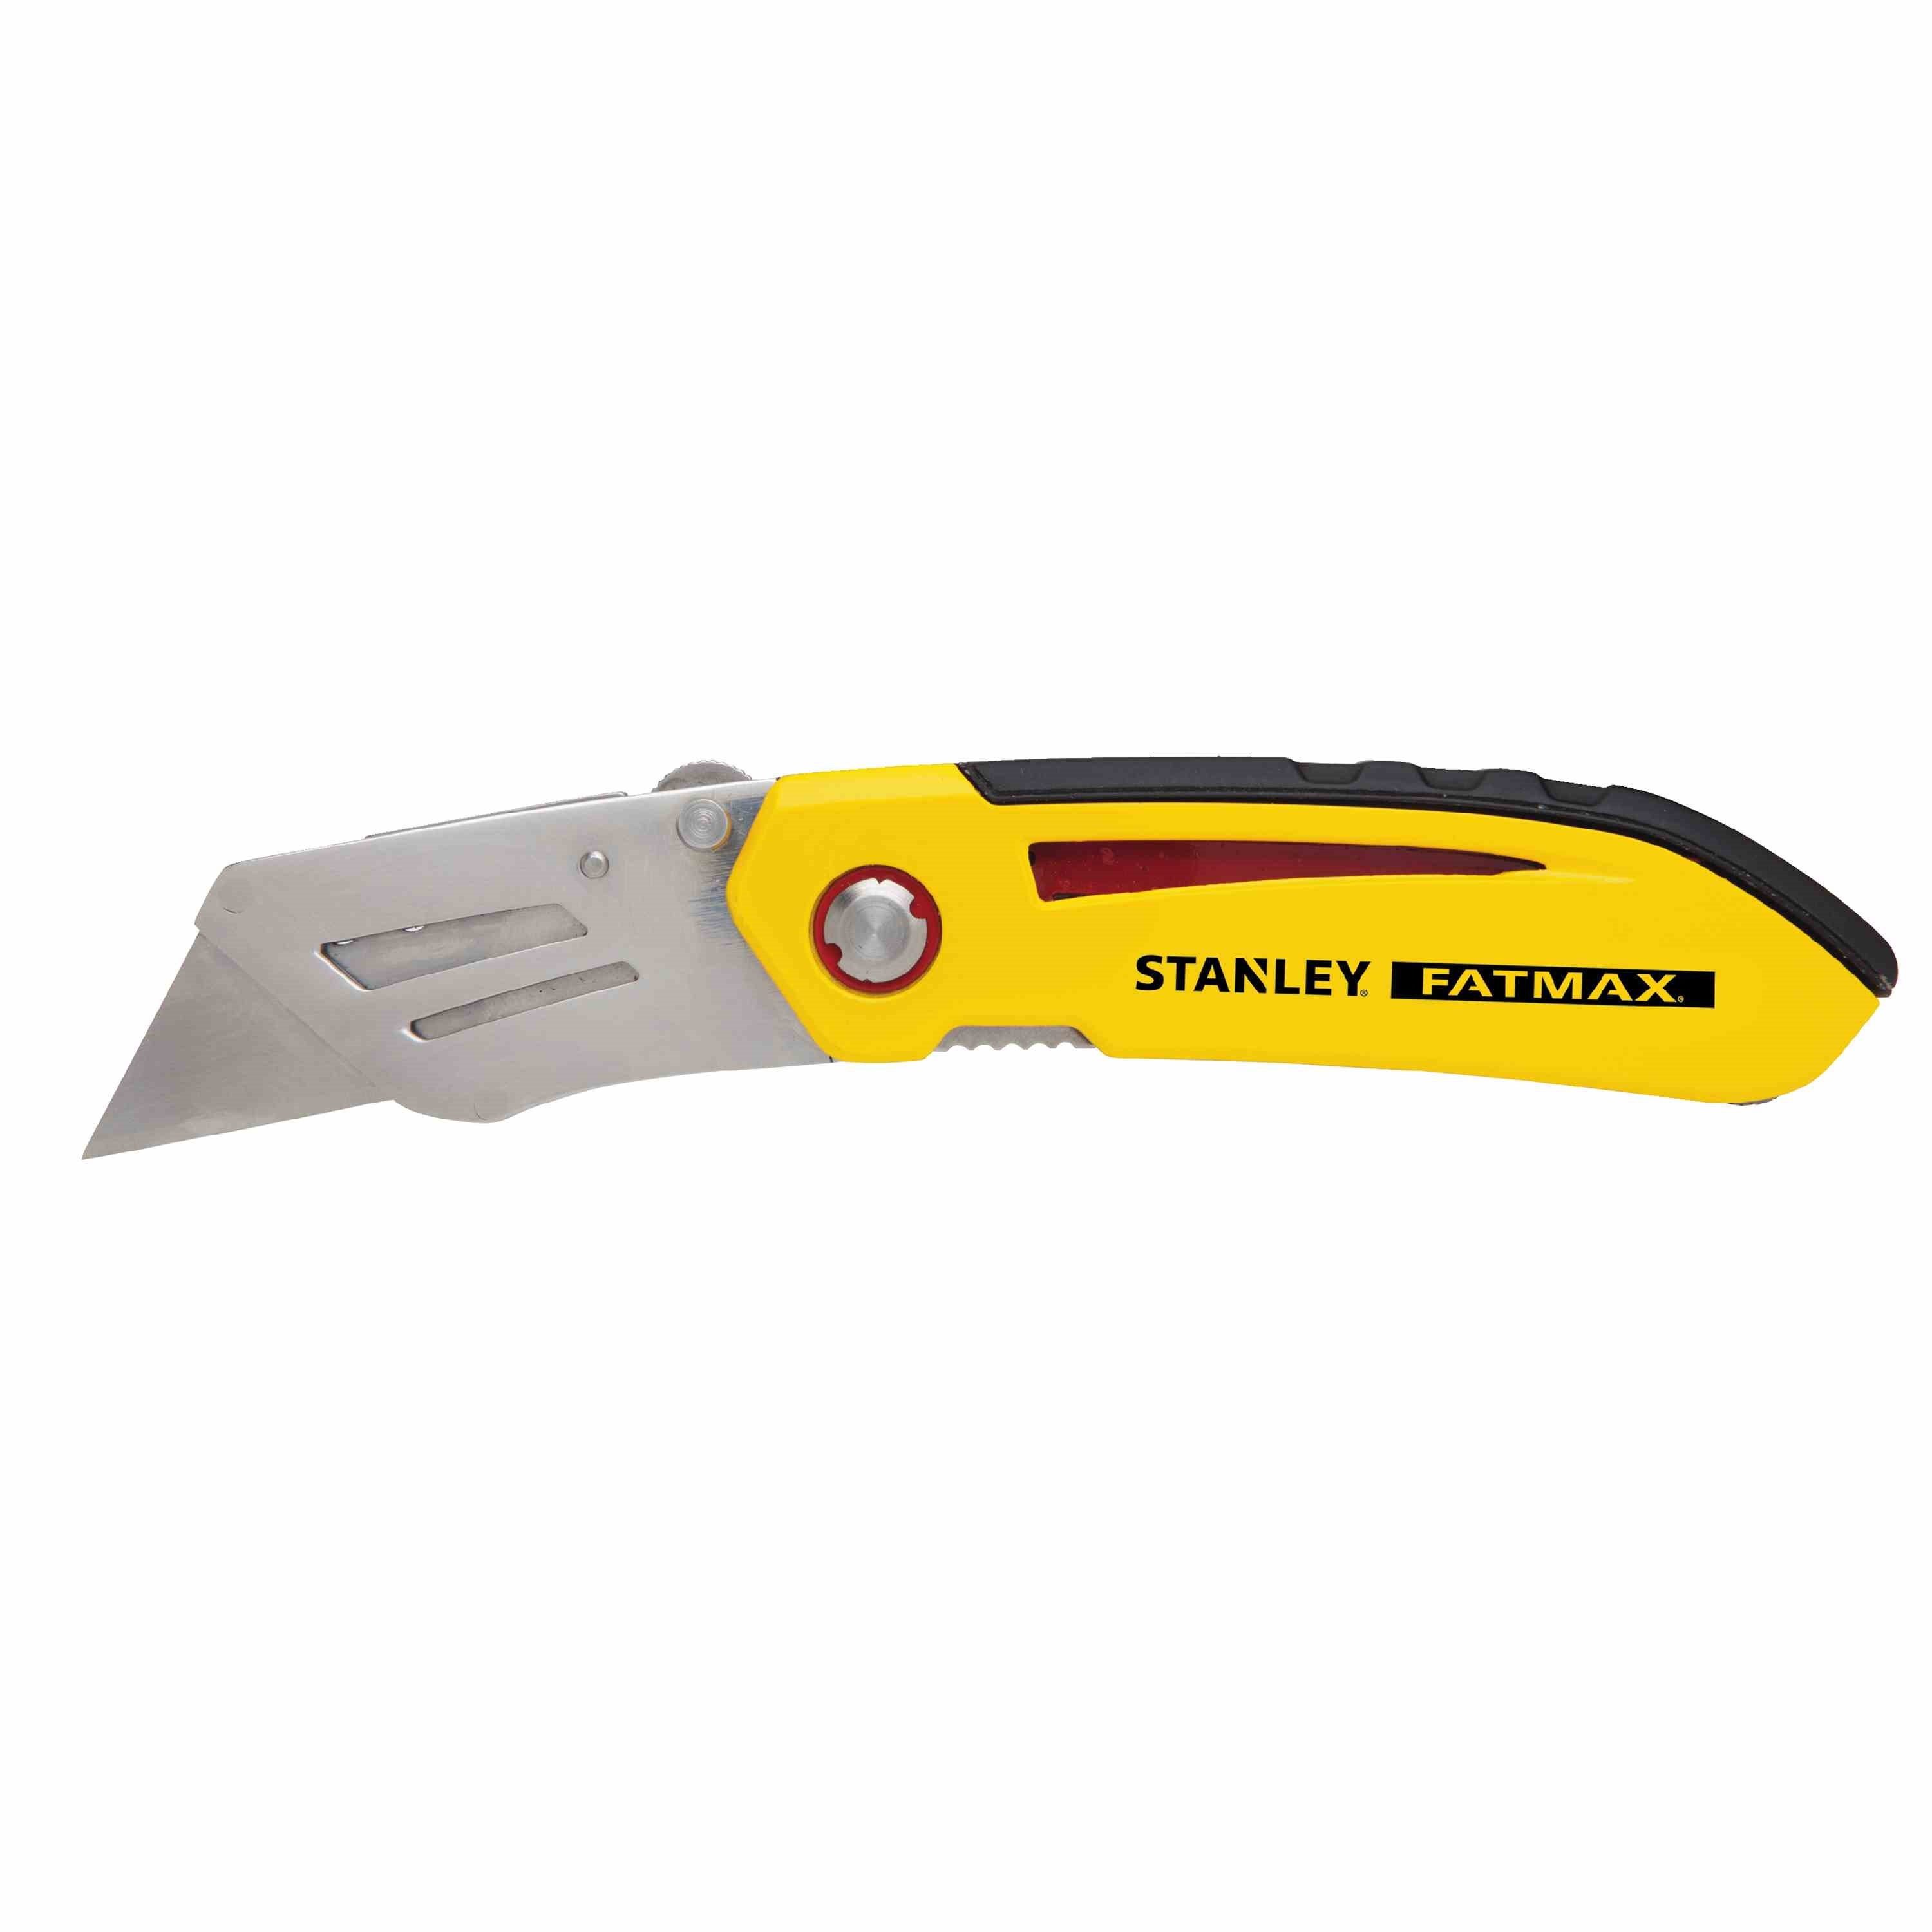 Stanley Tools - 614 in Fixed Folding Utility Knife - FMHT10827